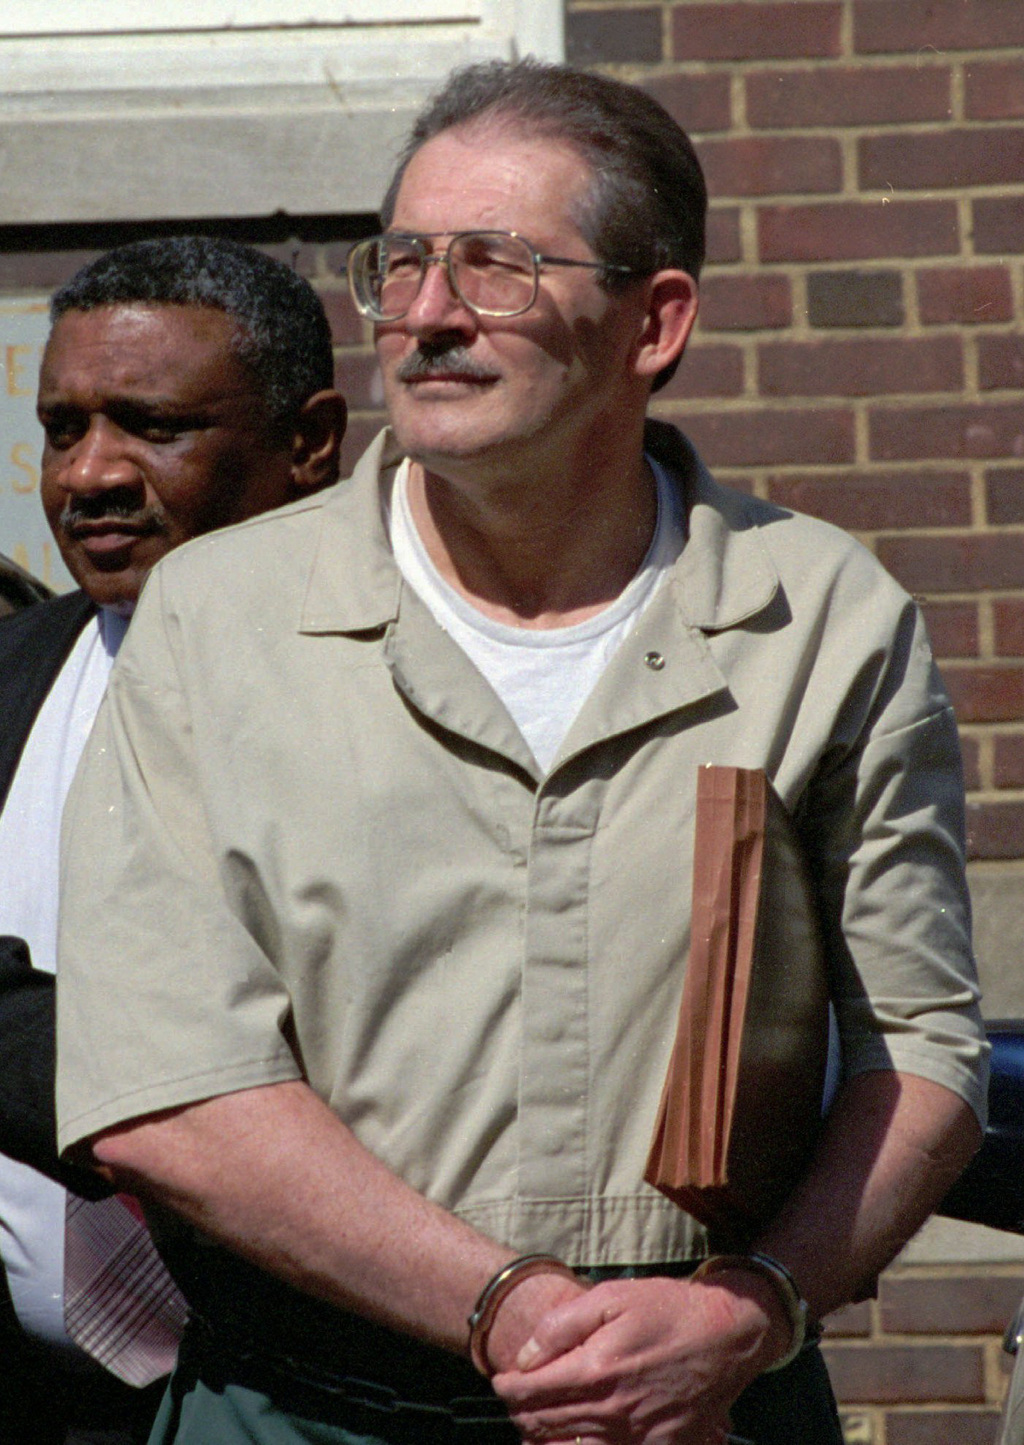 FILE - In this April 28, 1994 file photo, former CIA agent Aldrich Ames leaves federal court in Alexandria, Va. U.S. relations with Mos...